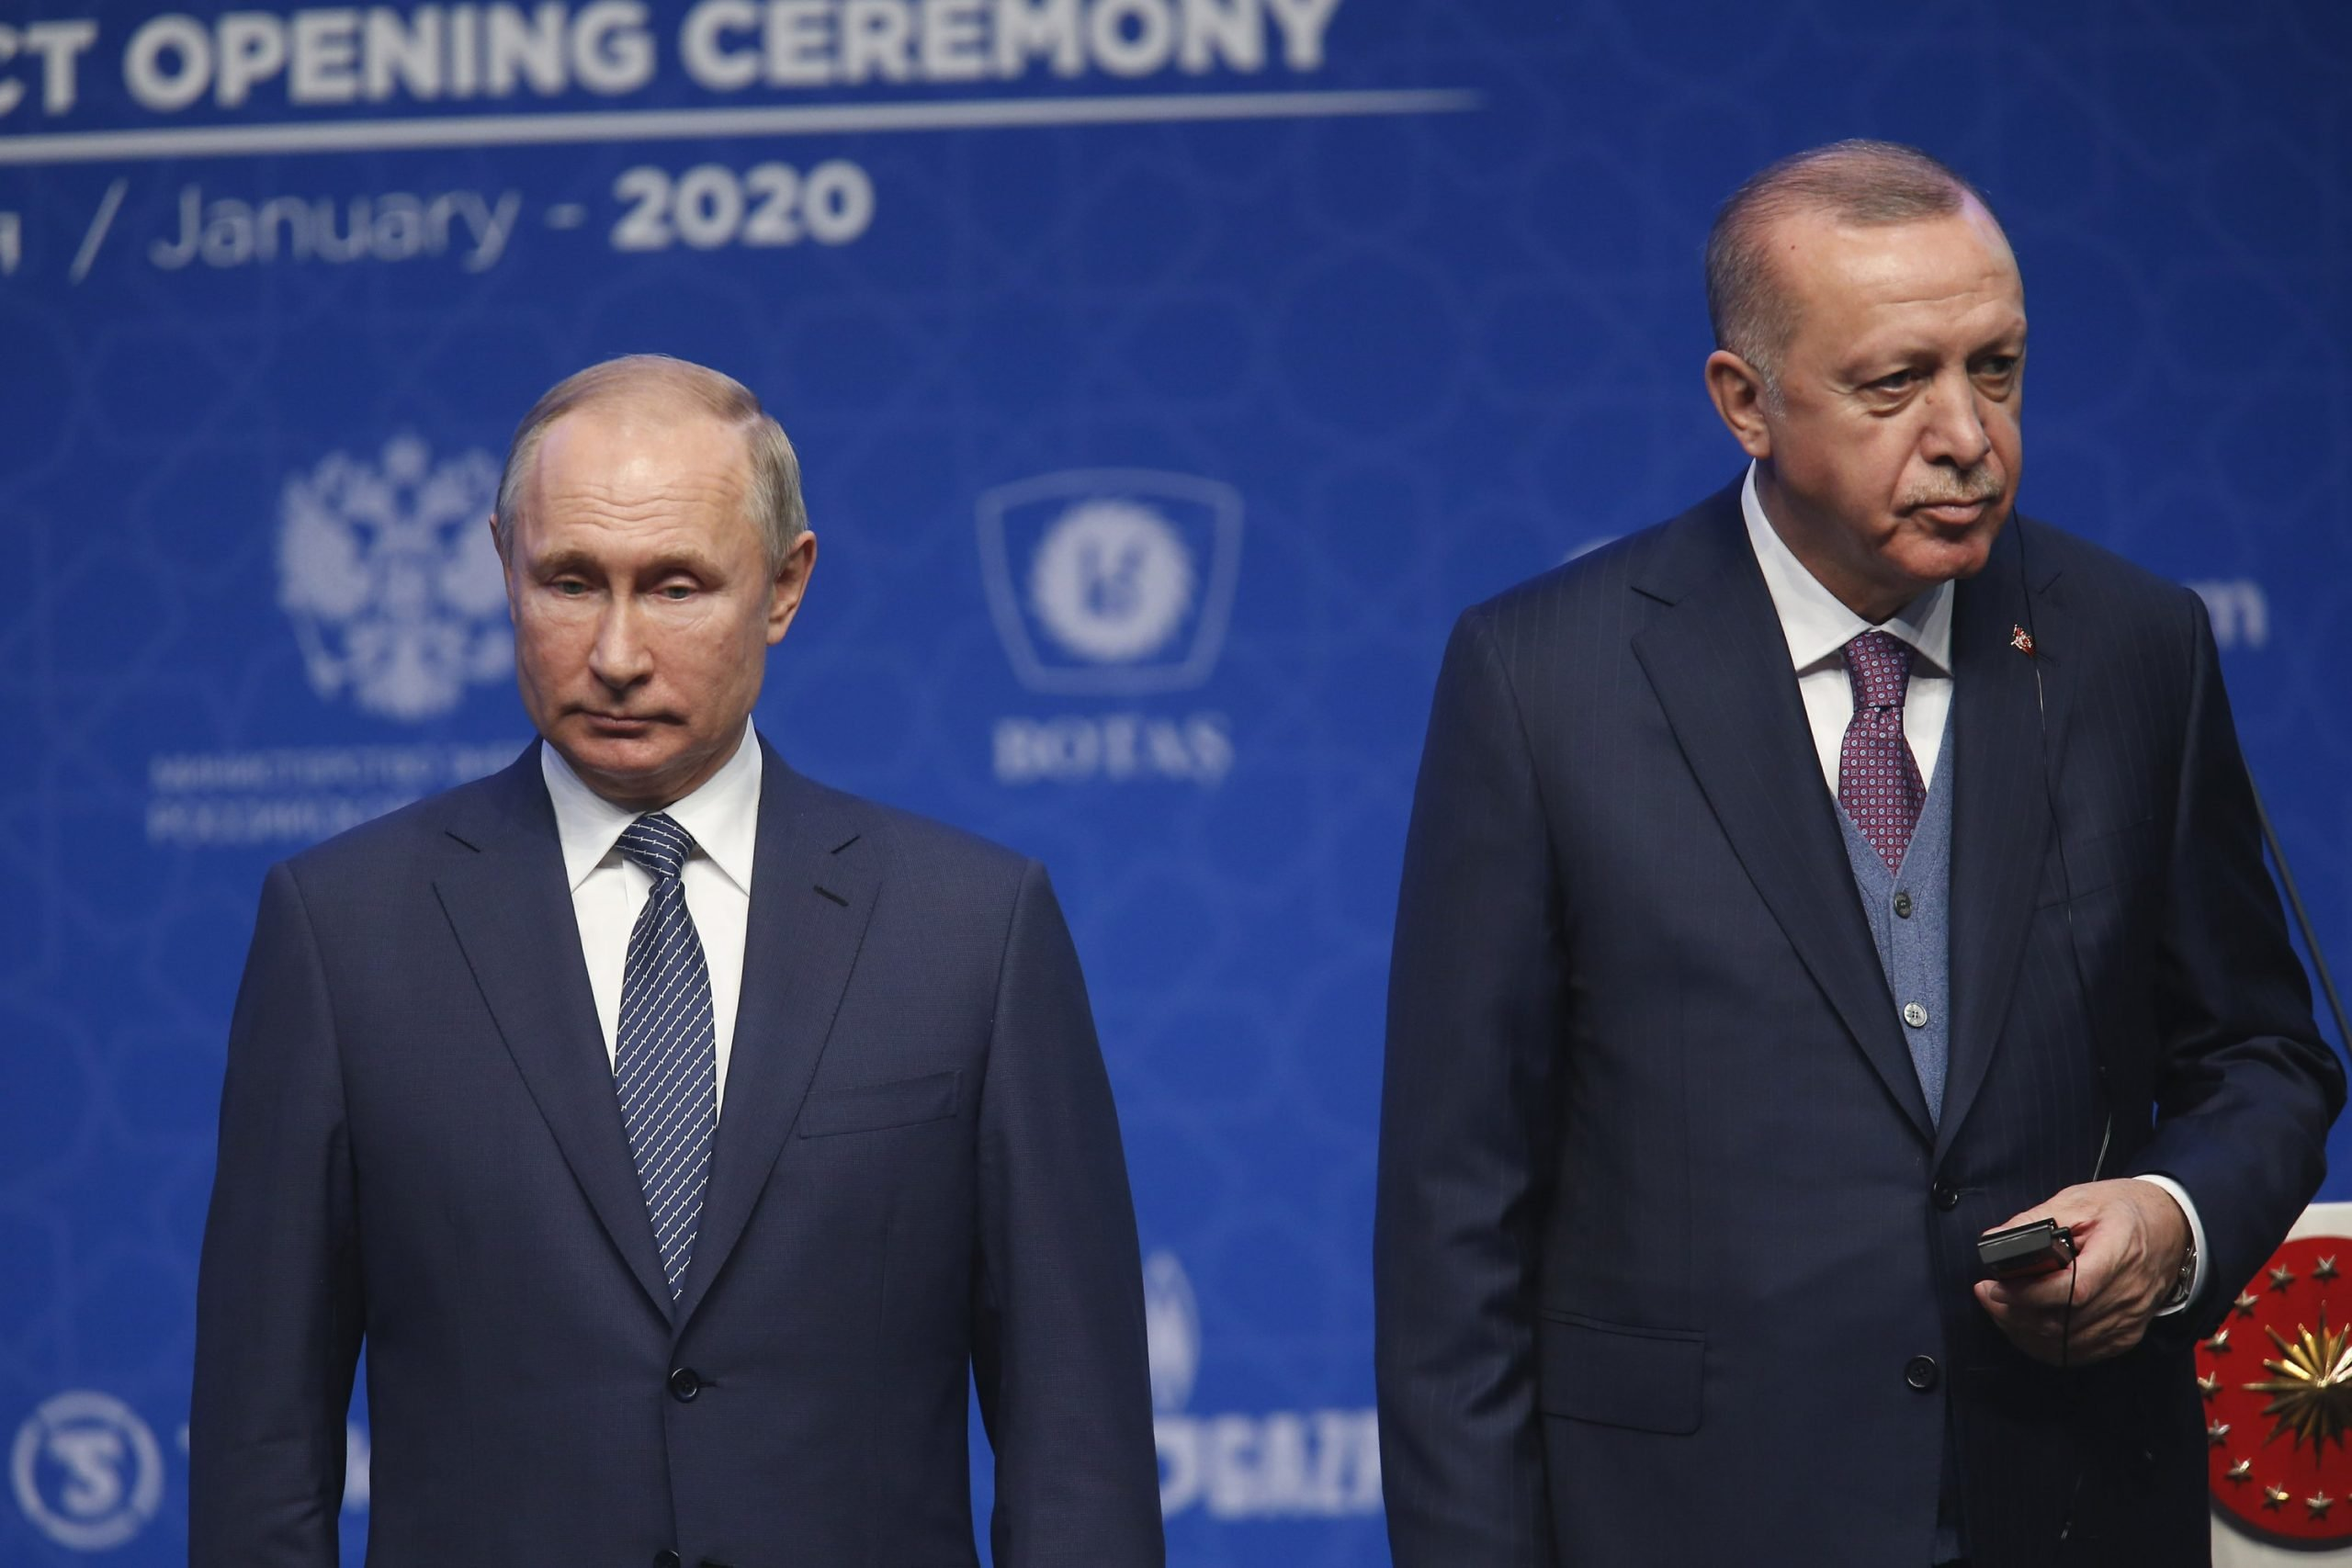 Putin and Erdogan call for a ceasefire in Libya starting Sunday